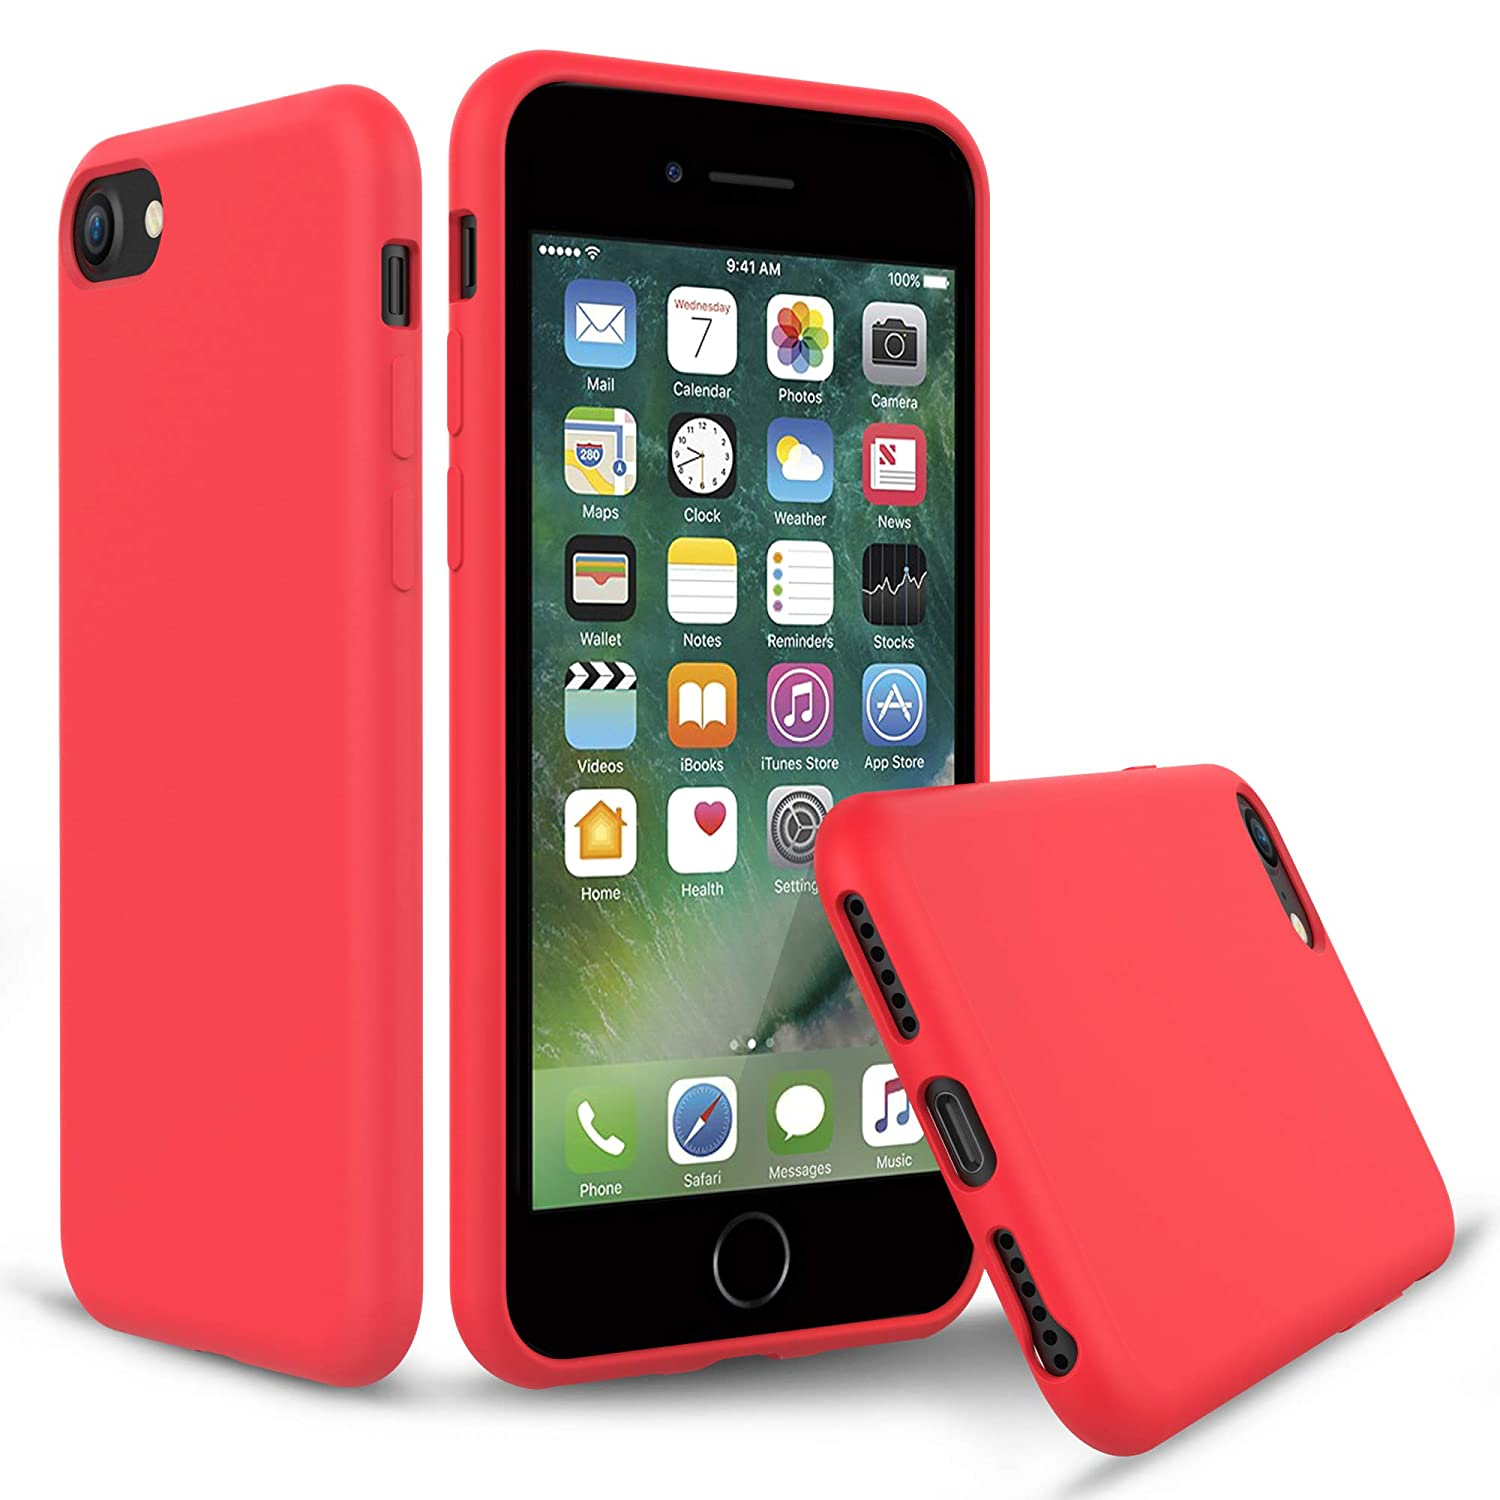 on sale 2dbc0 a4443 PENJOY Silicone Case for Apple iPhone 6 / 6s / 7/8, Full Body Protection  Silicon Cases Support Wireless Charging Slim Rubber Cover, Red